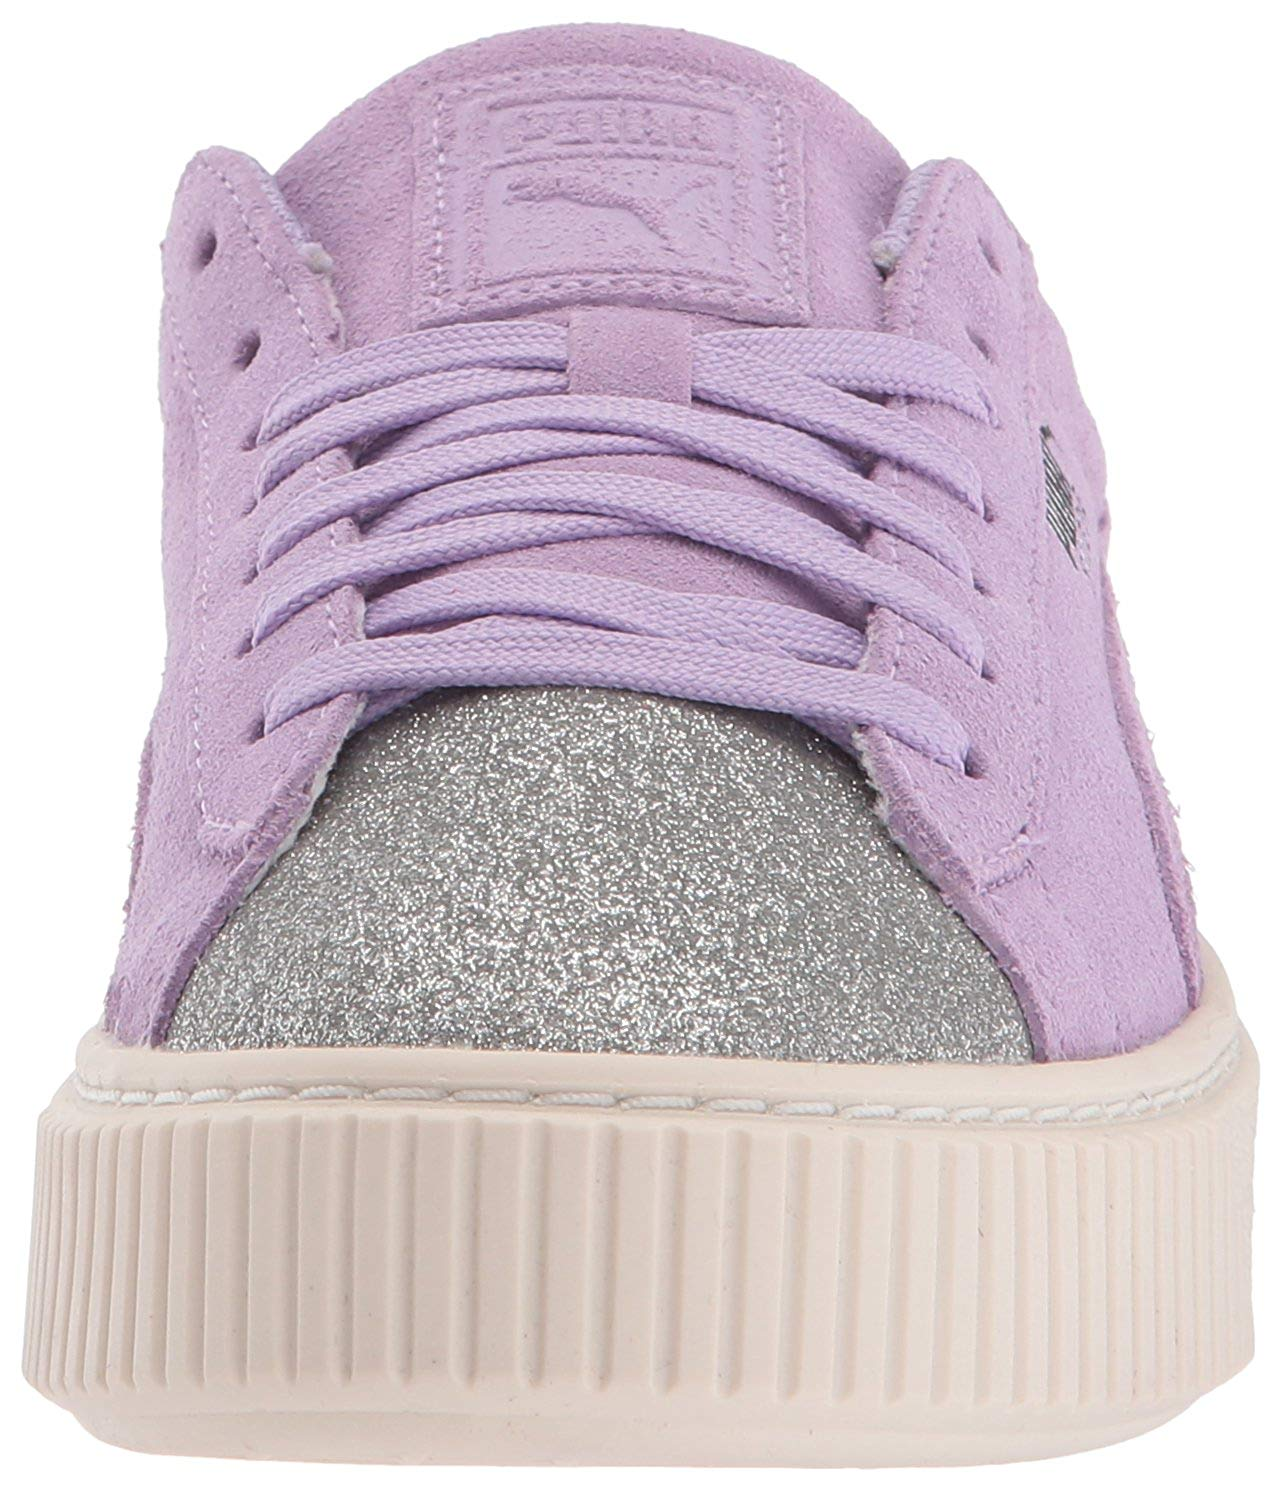 f22ad3bebb50fa Details about PUMA Girls suede platform glam Low Top Lace Up Walking Shoes